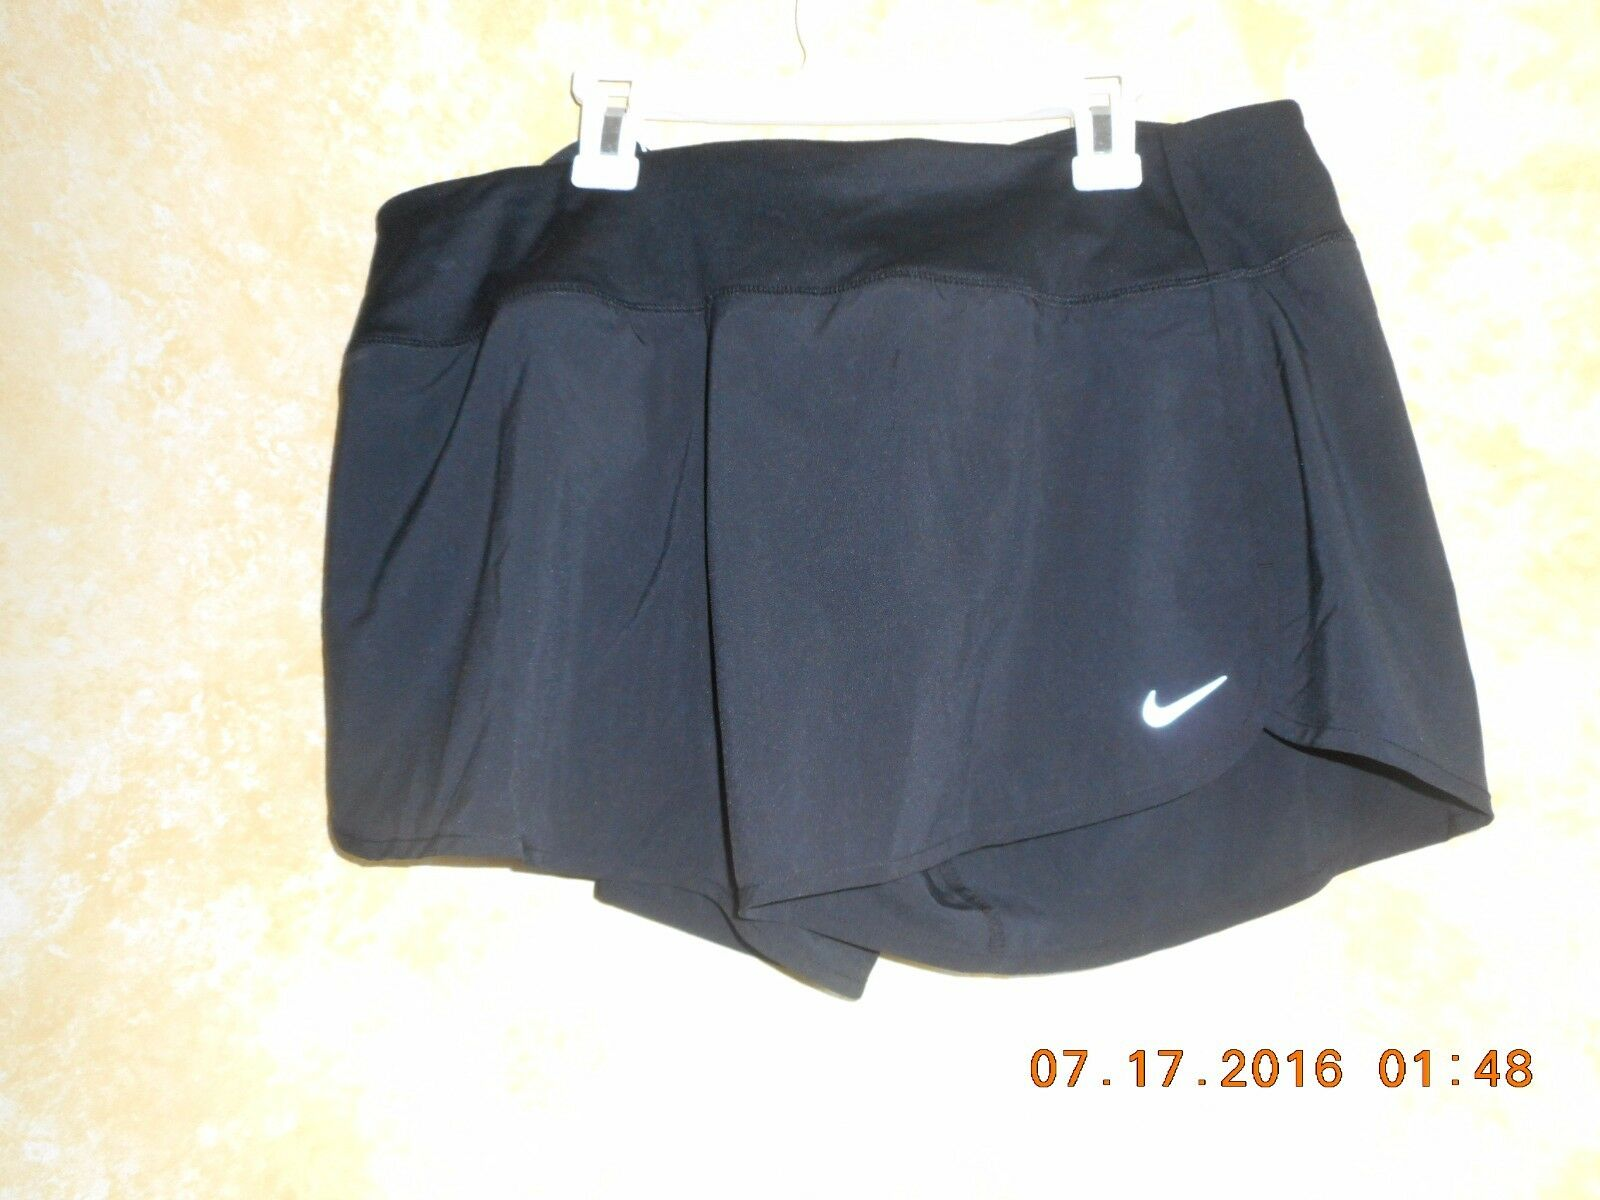 NIKE Dry fit Womens running shorts LARGE